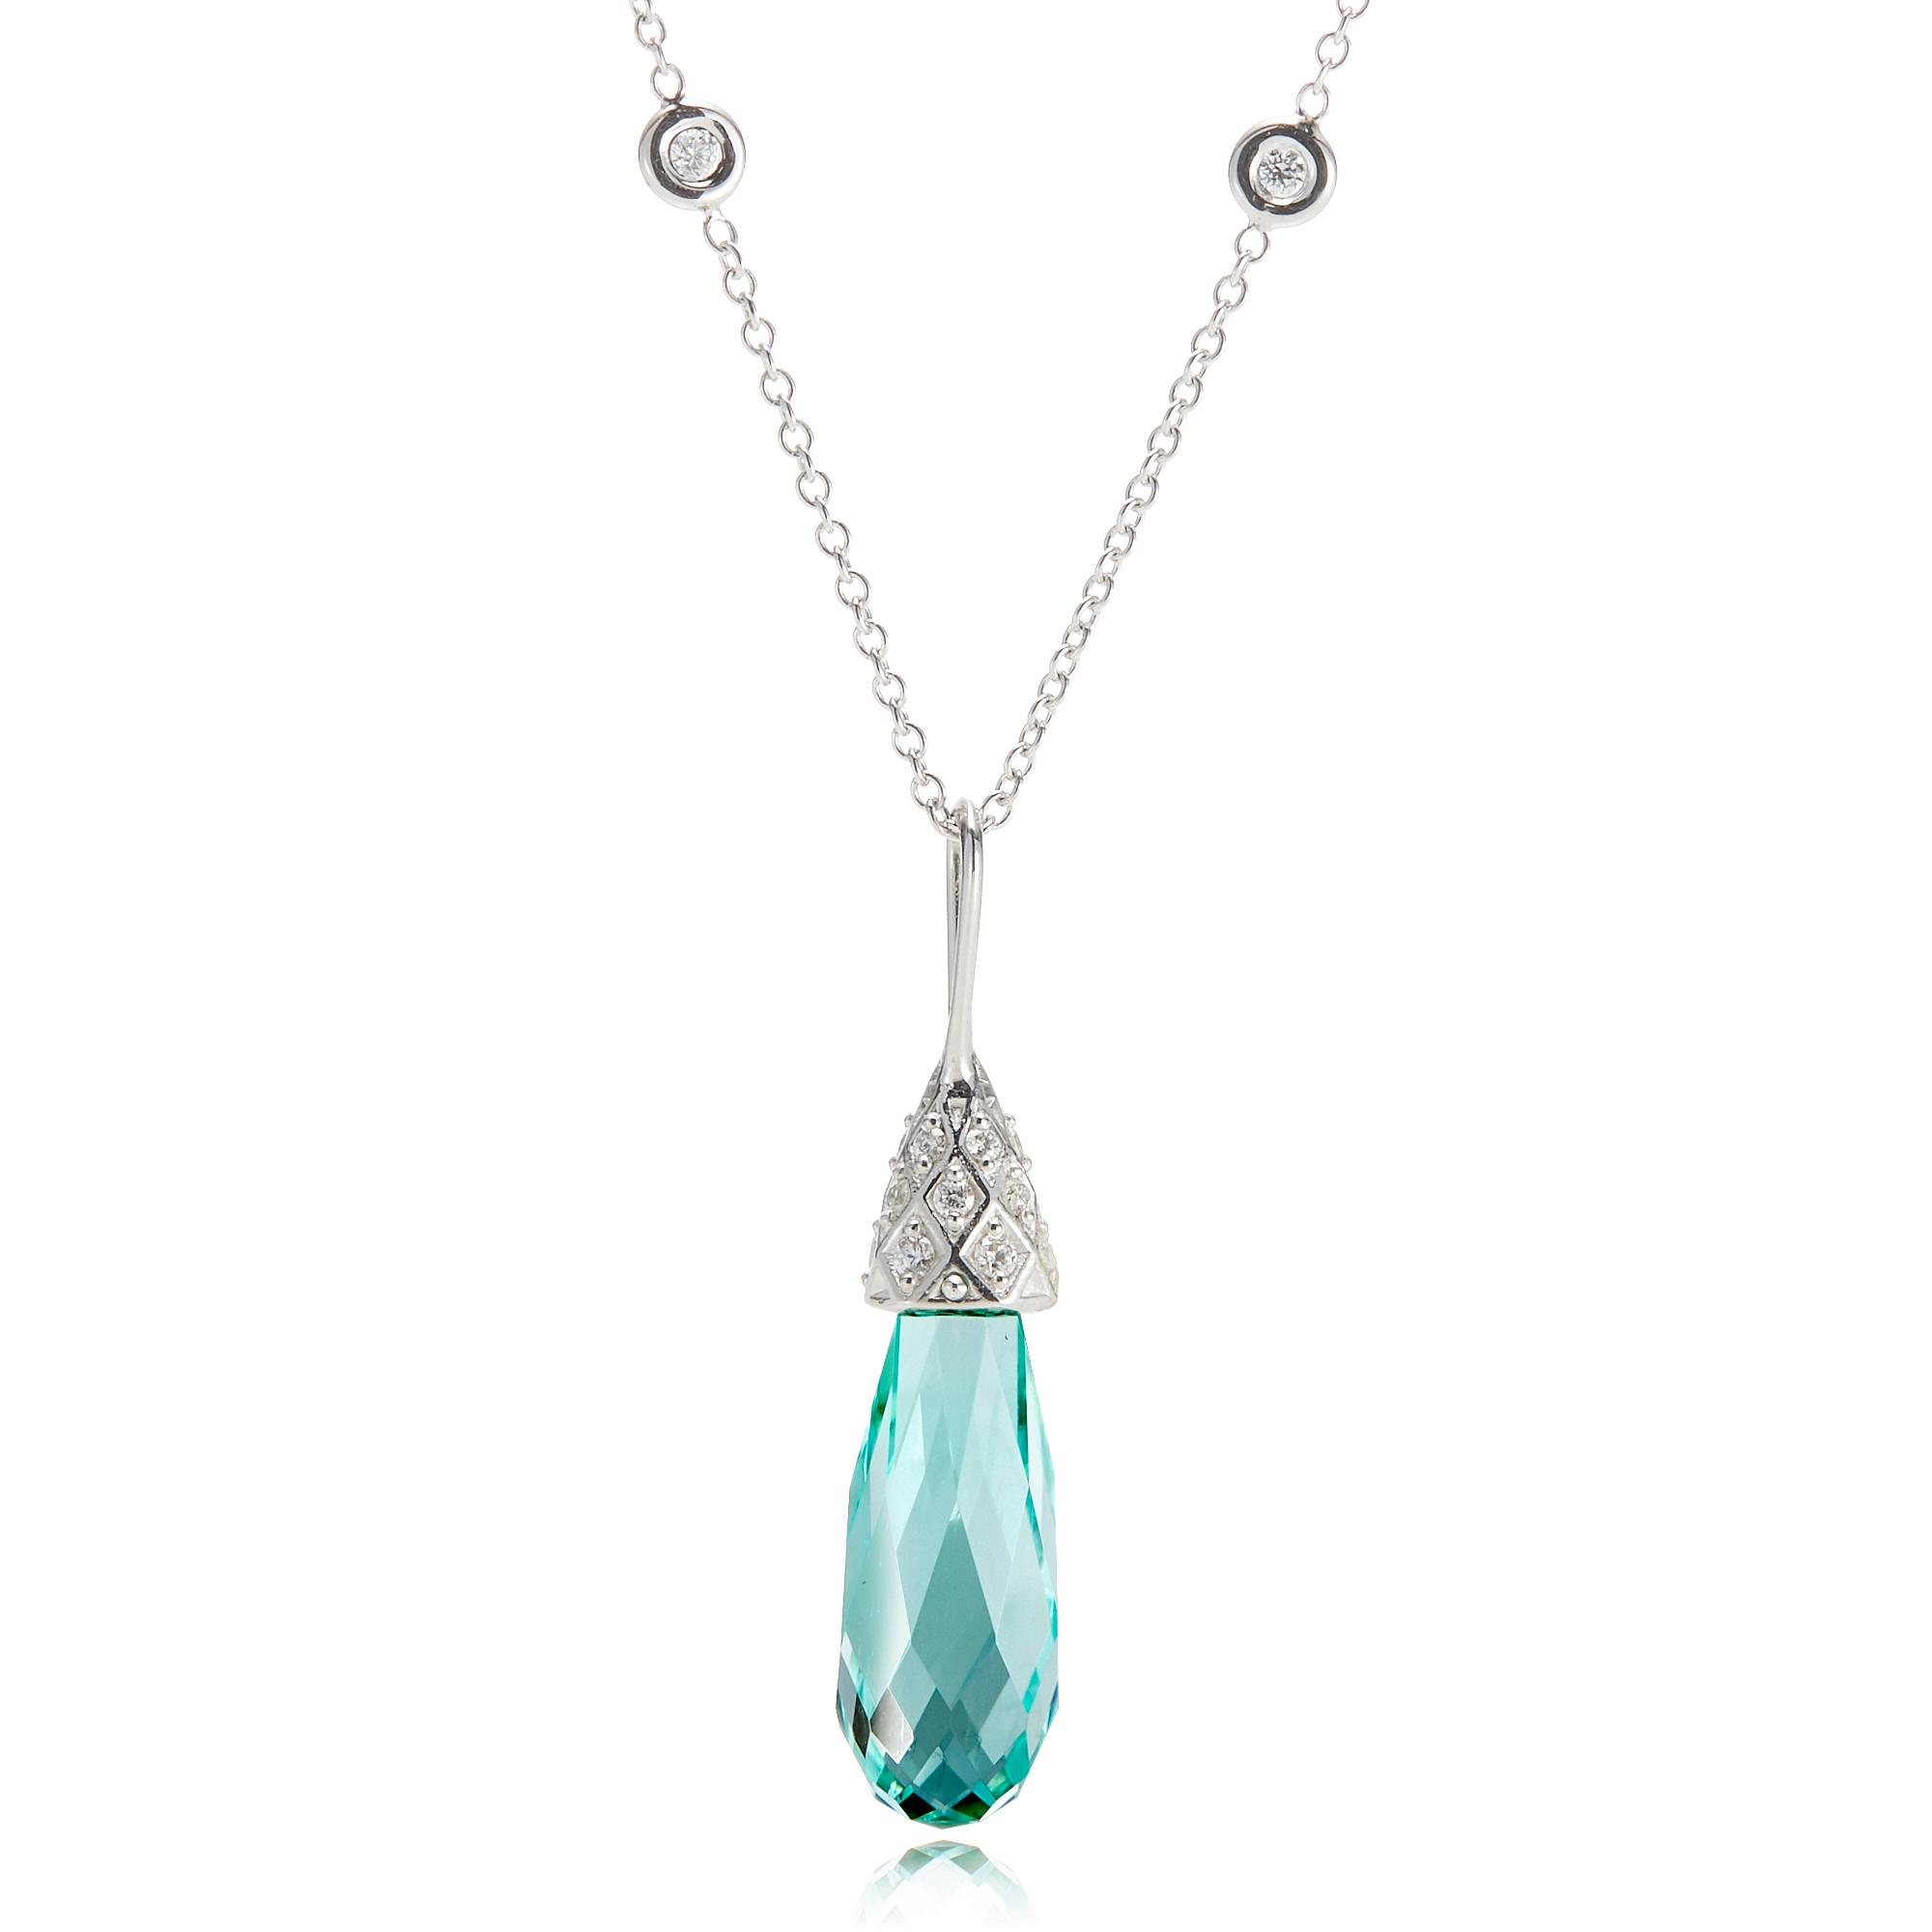 Gump's Faceted Tourmaline Briolette & Diamond Honeycomb Necklace